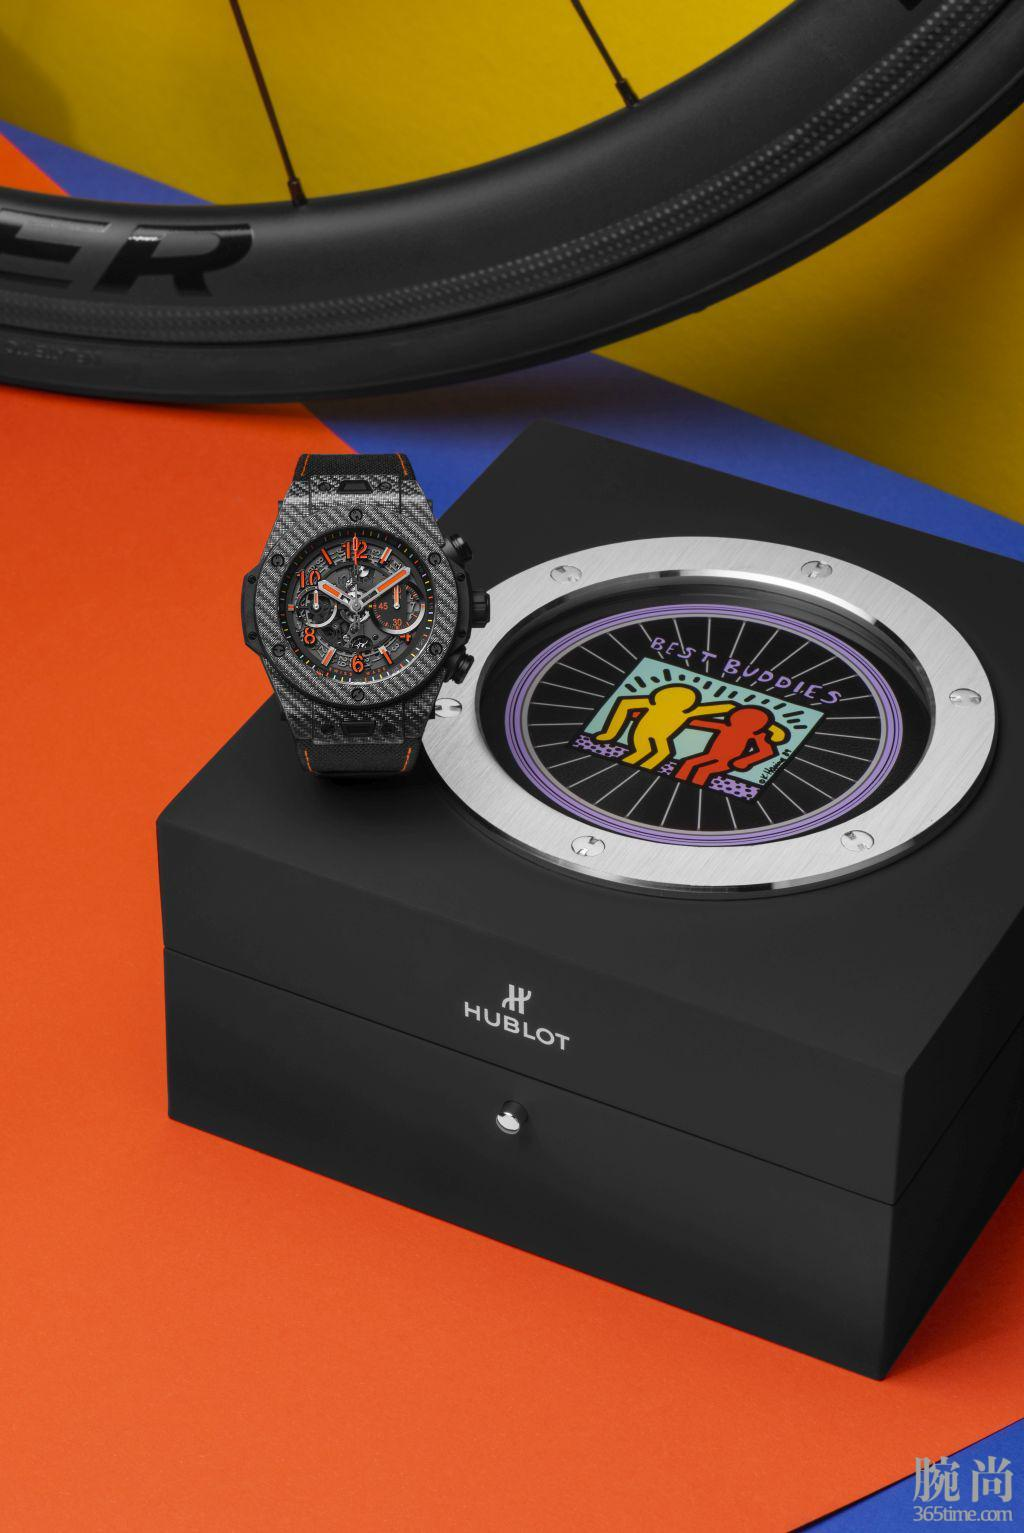 Hublot-Big-Bang-Unico-Best-Buddies-Limited-Edition-3.jpg